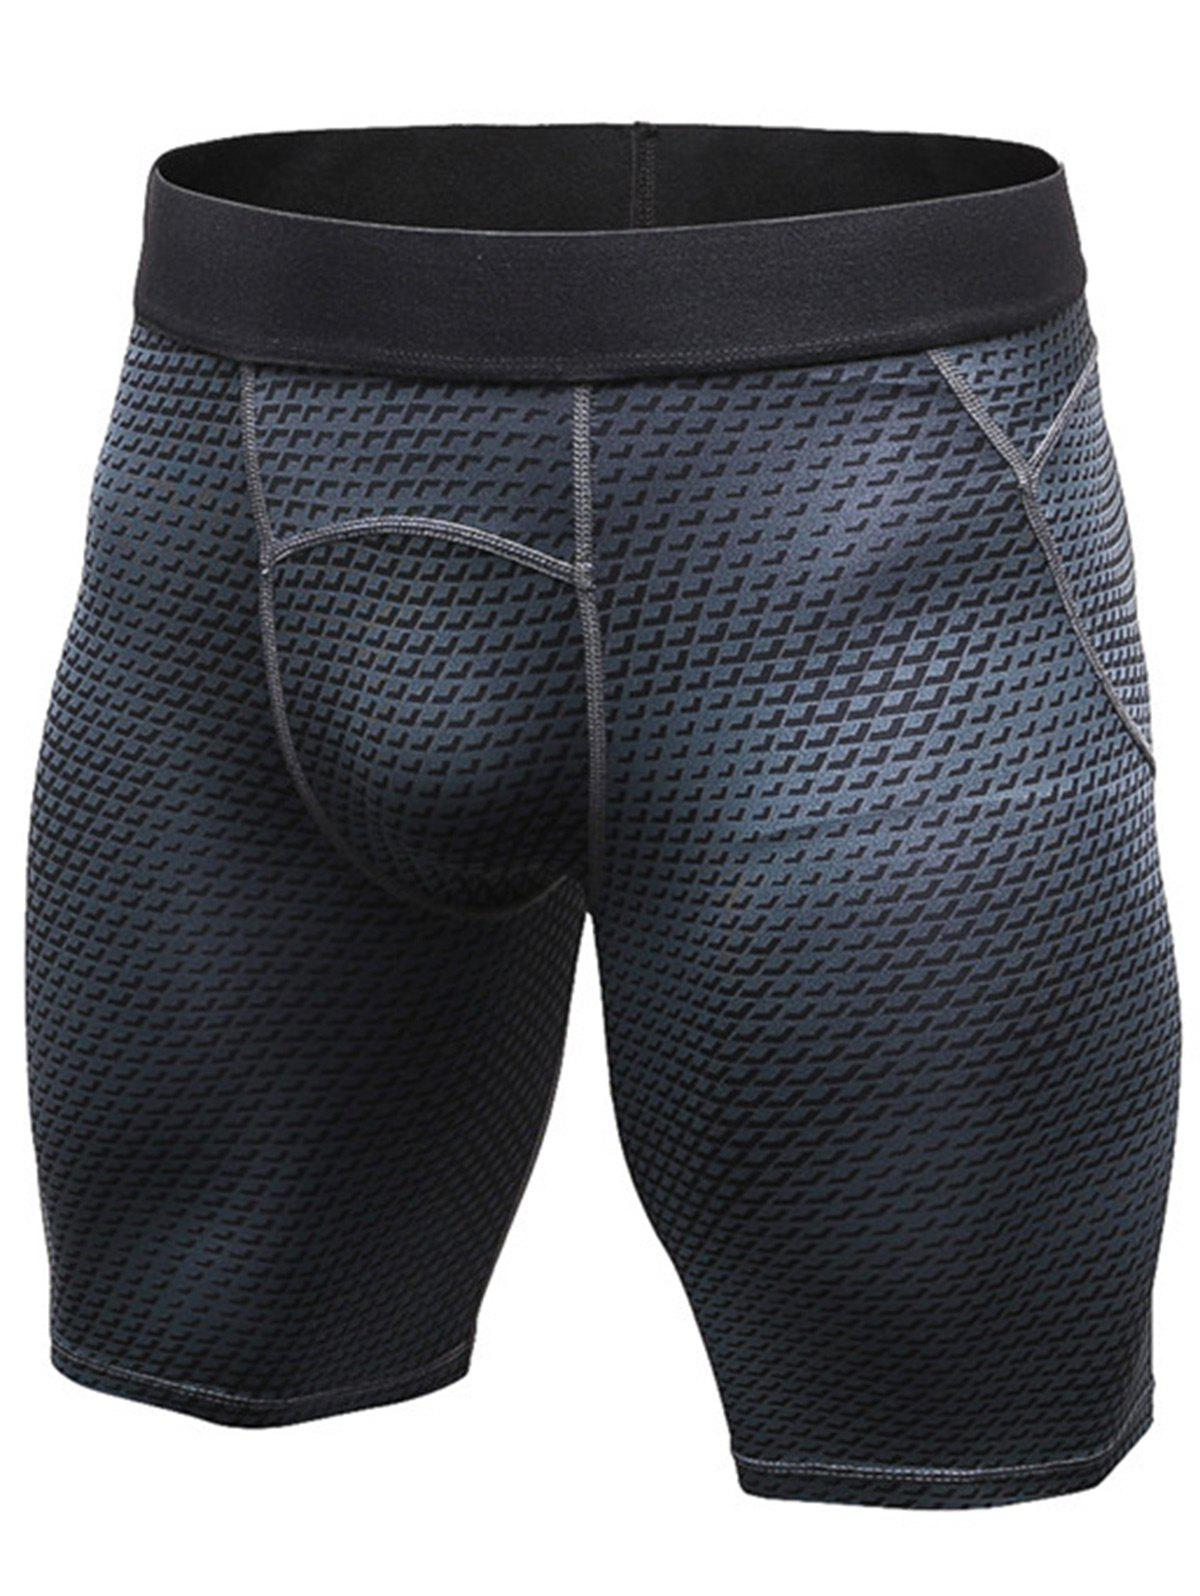 Chic 3D Geometric Print Quick Dry Fitted Gym Shorts